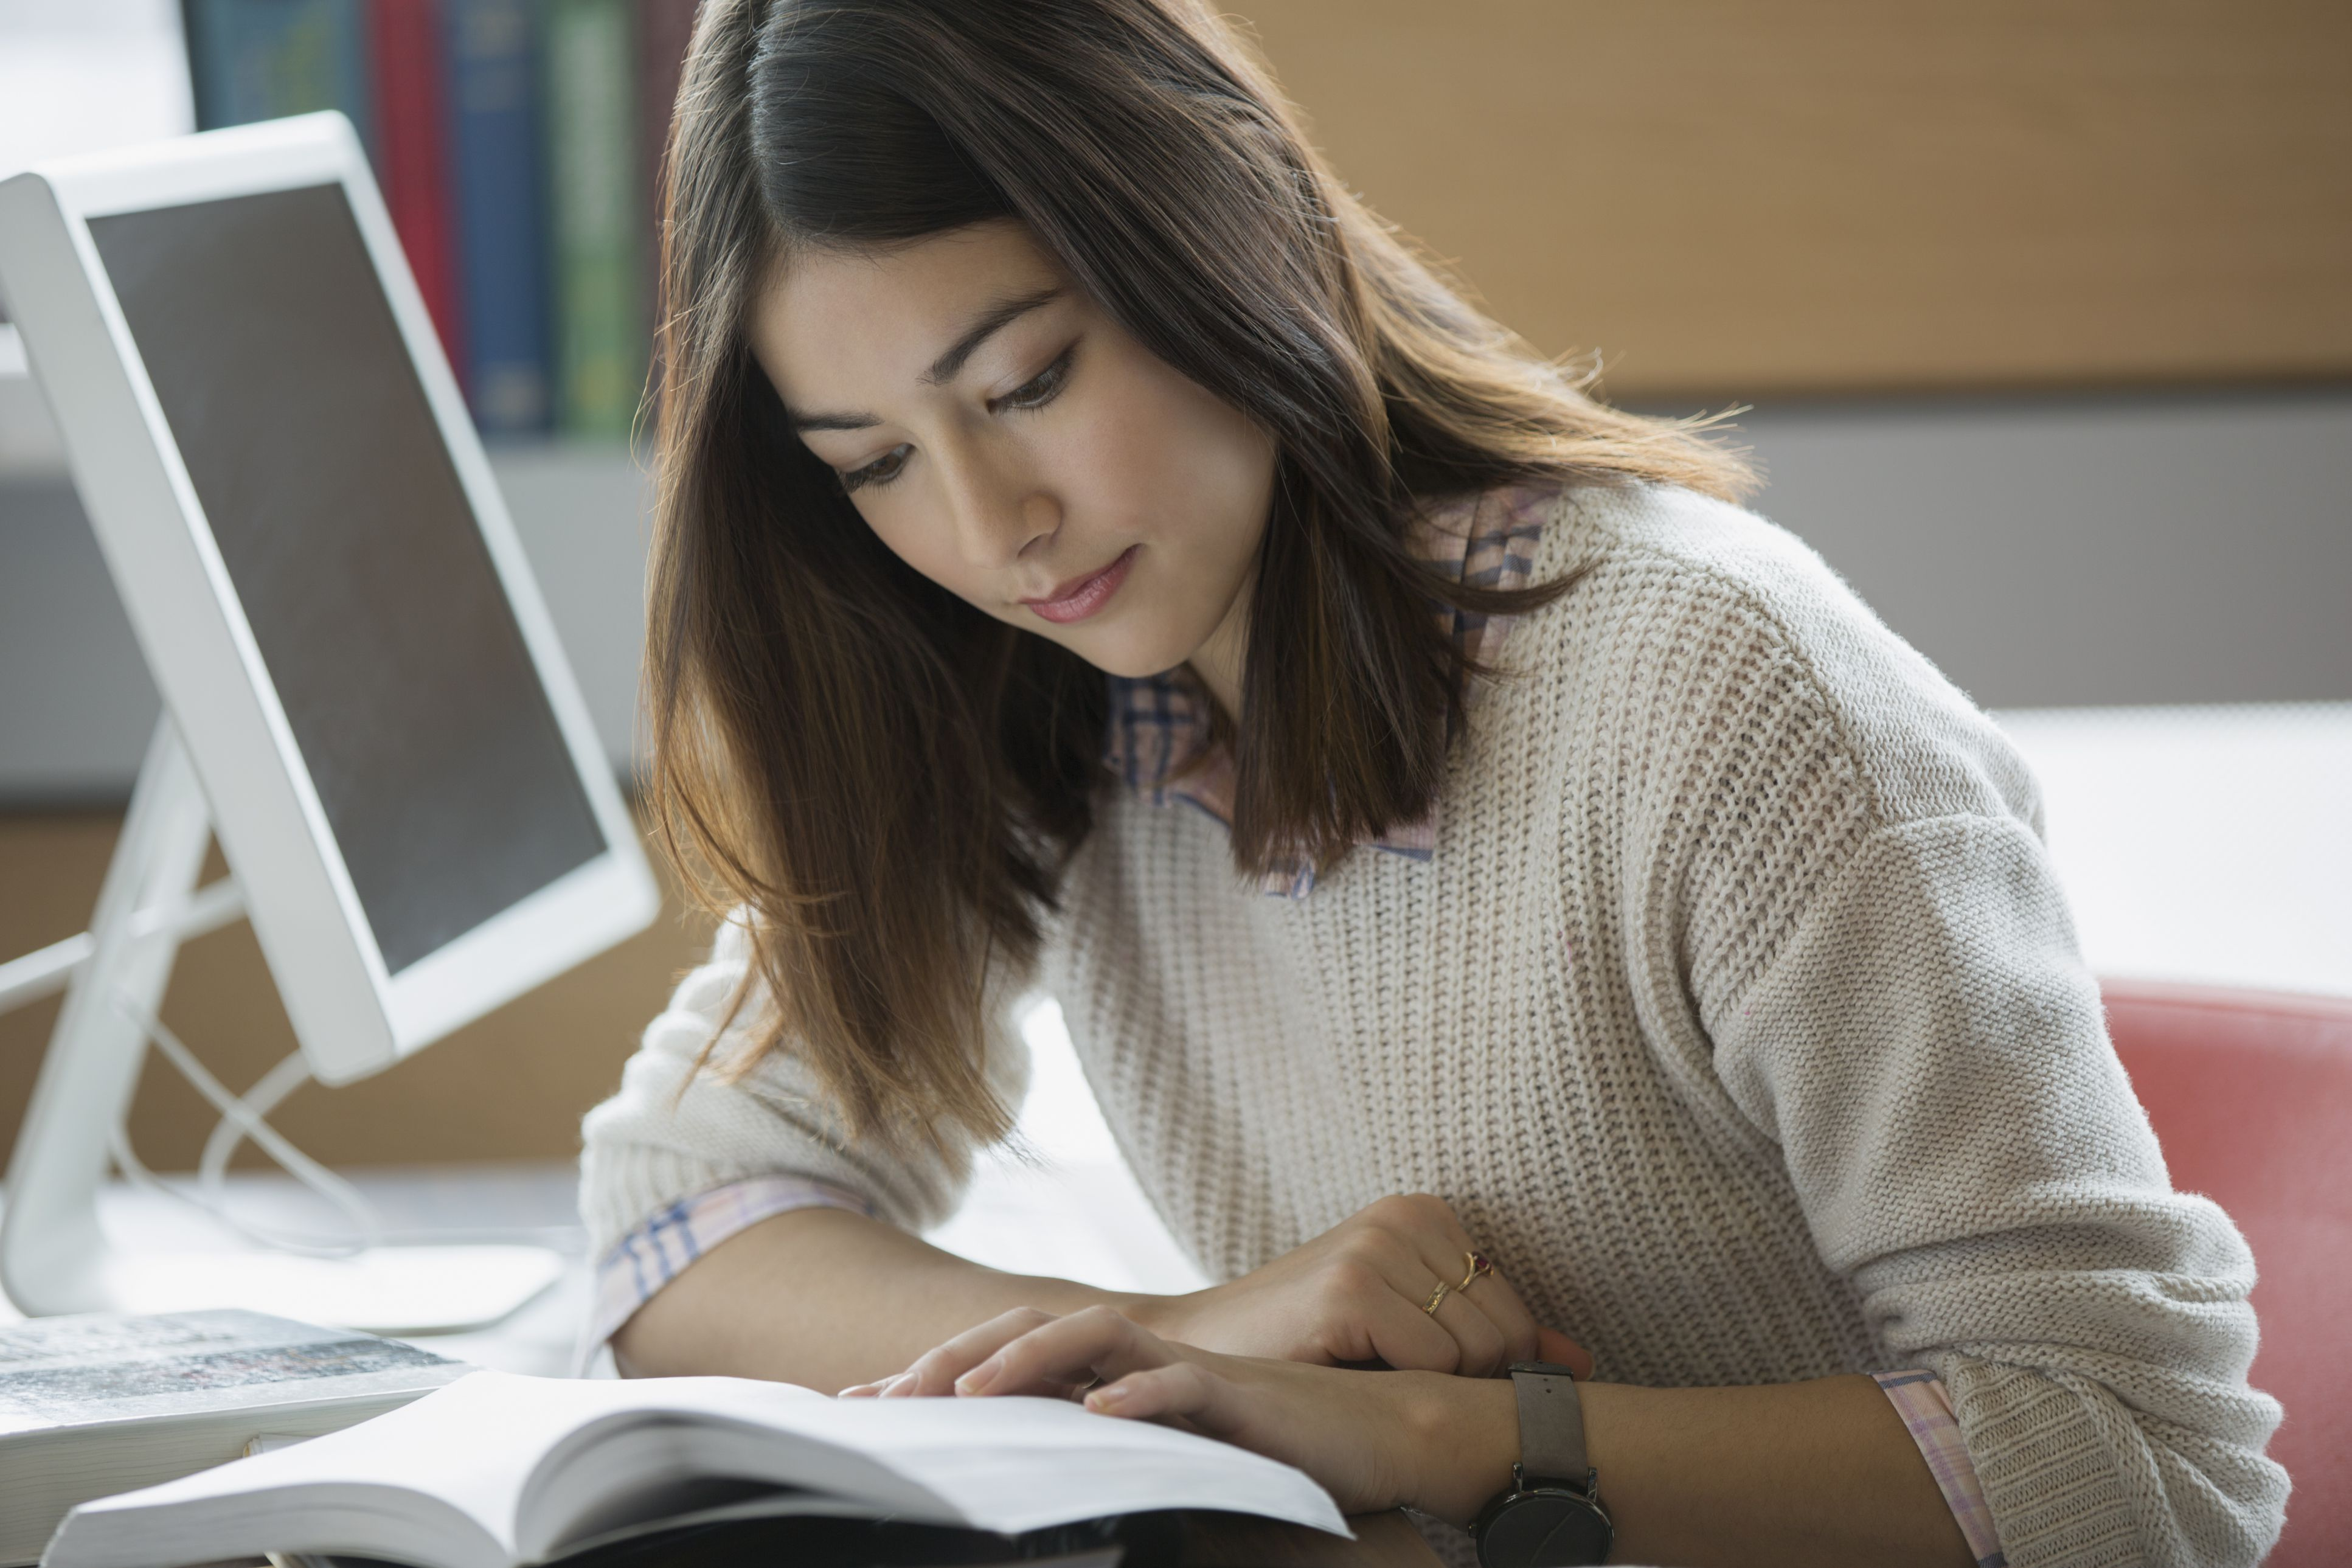 Be strategic to get the most out of your reading time.